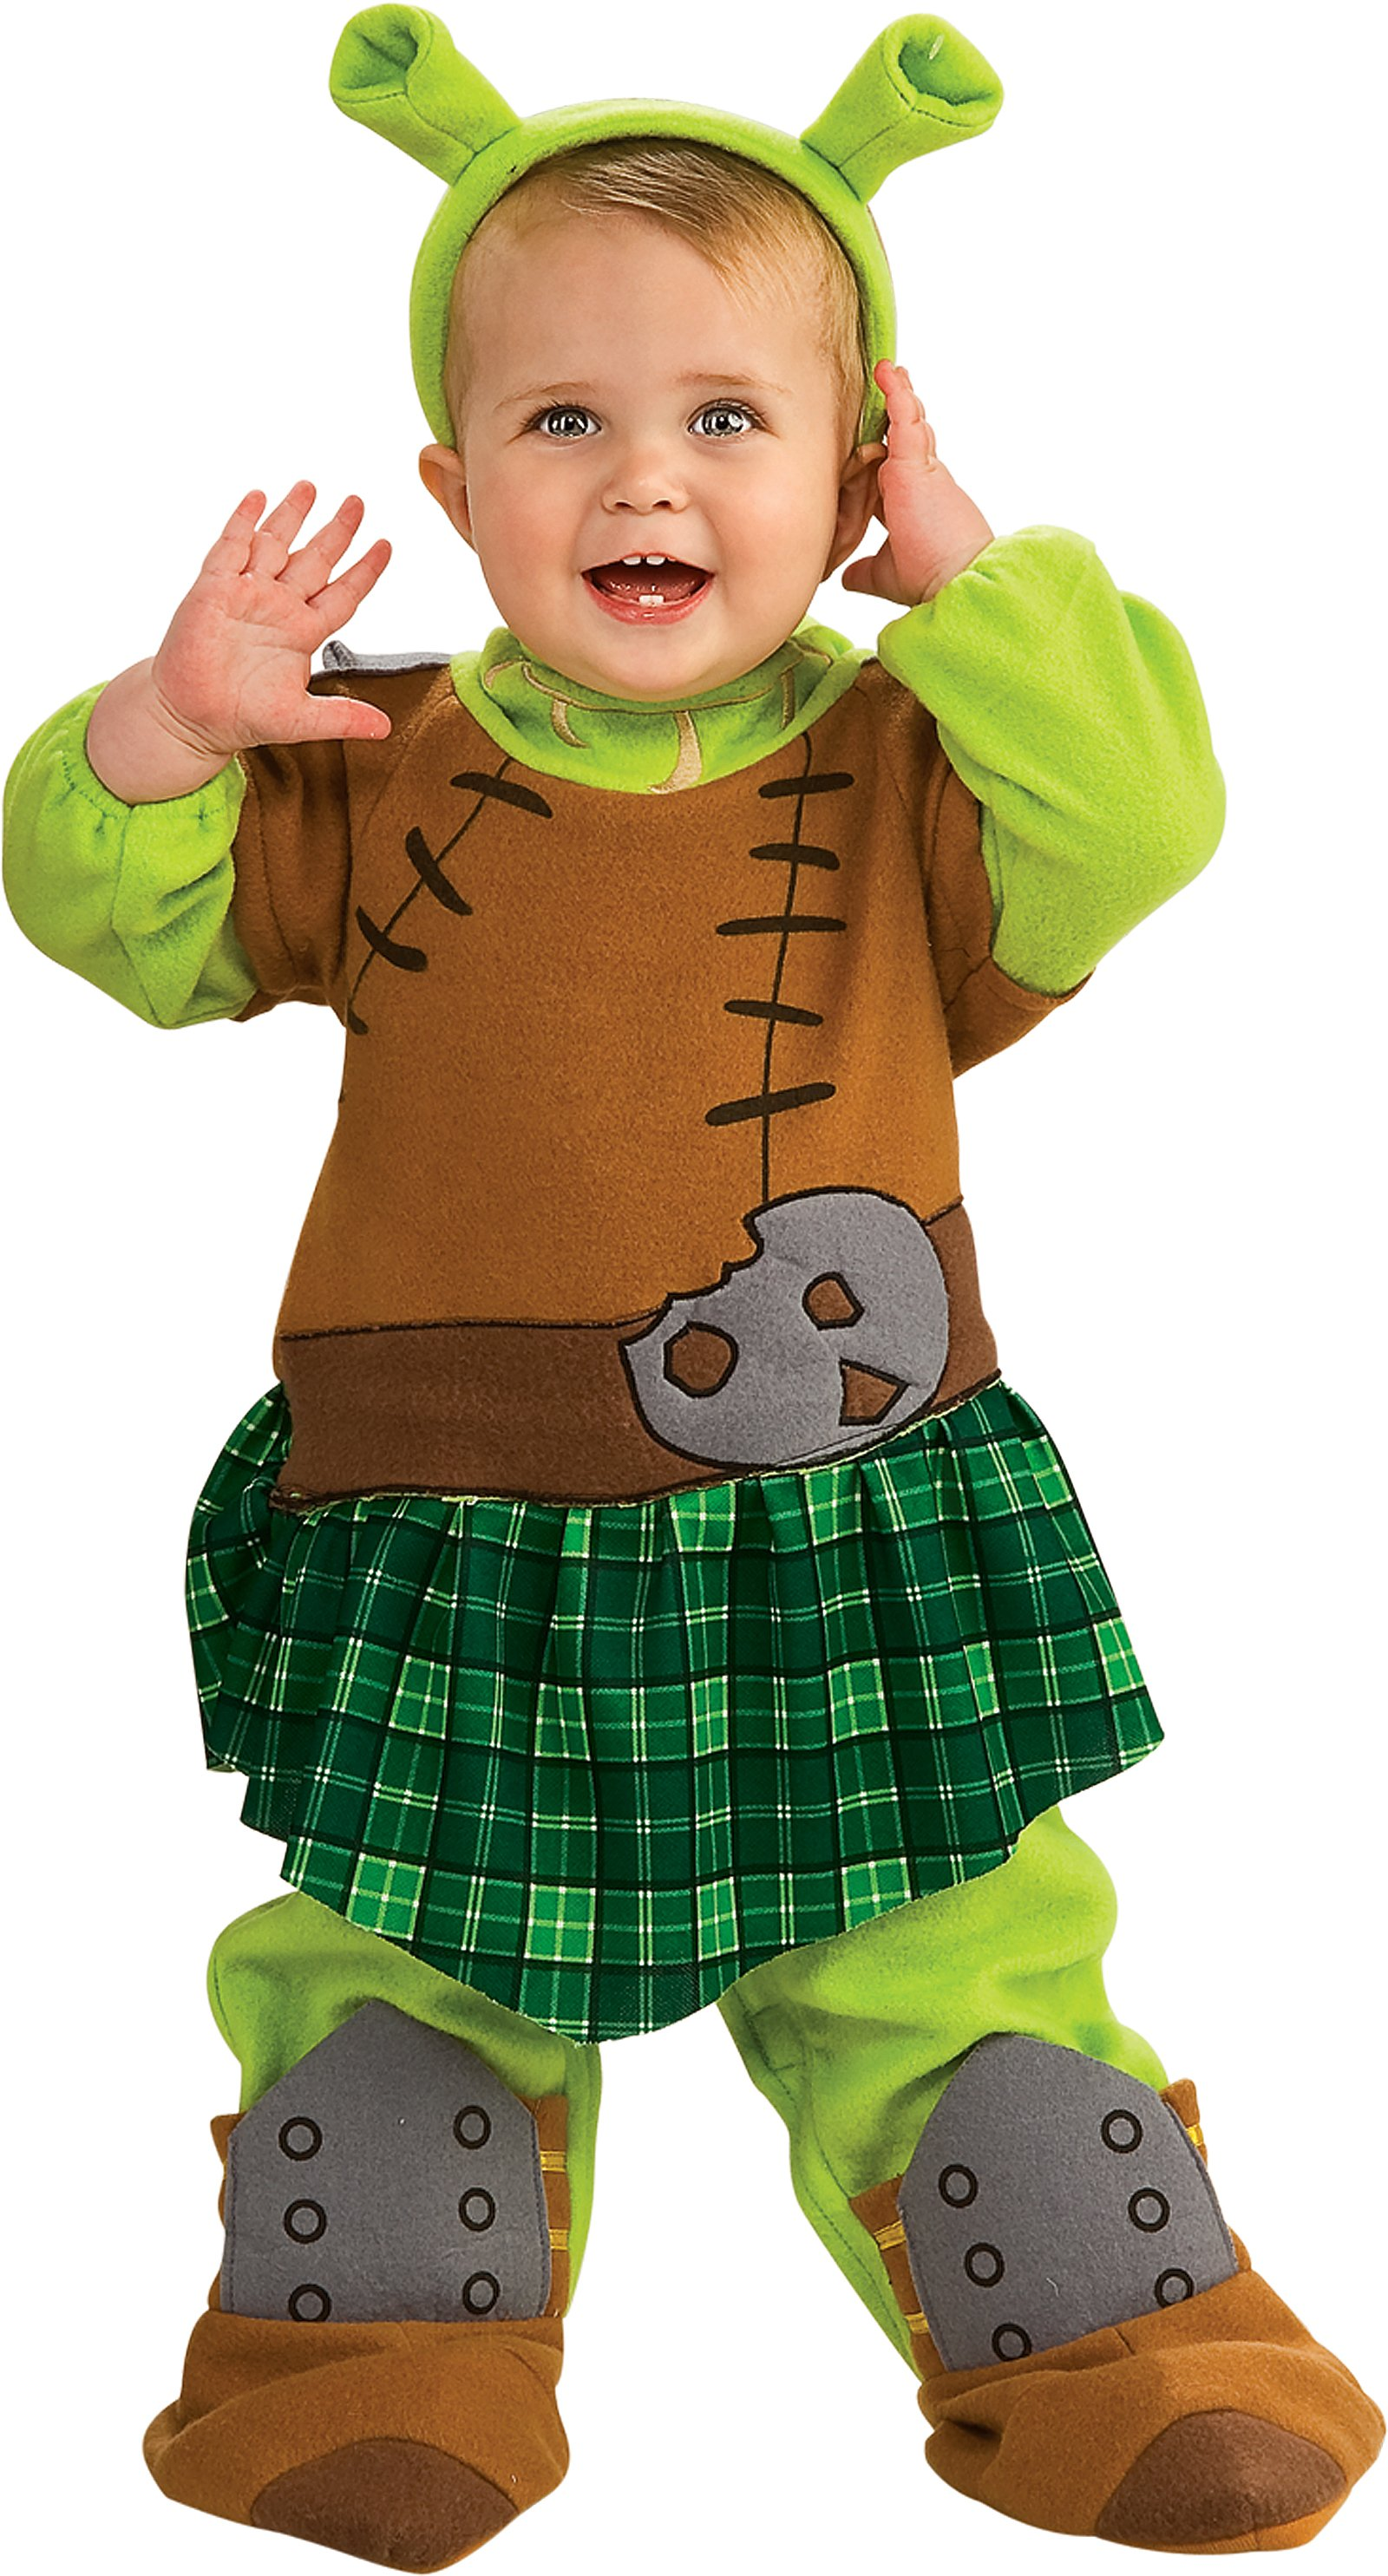 Shrek Forever After - Fiona Warrior Infant/Toddler Costume